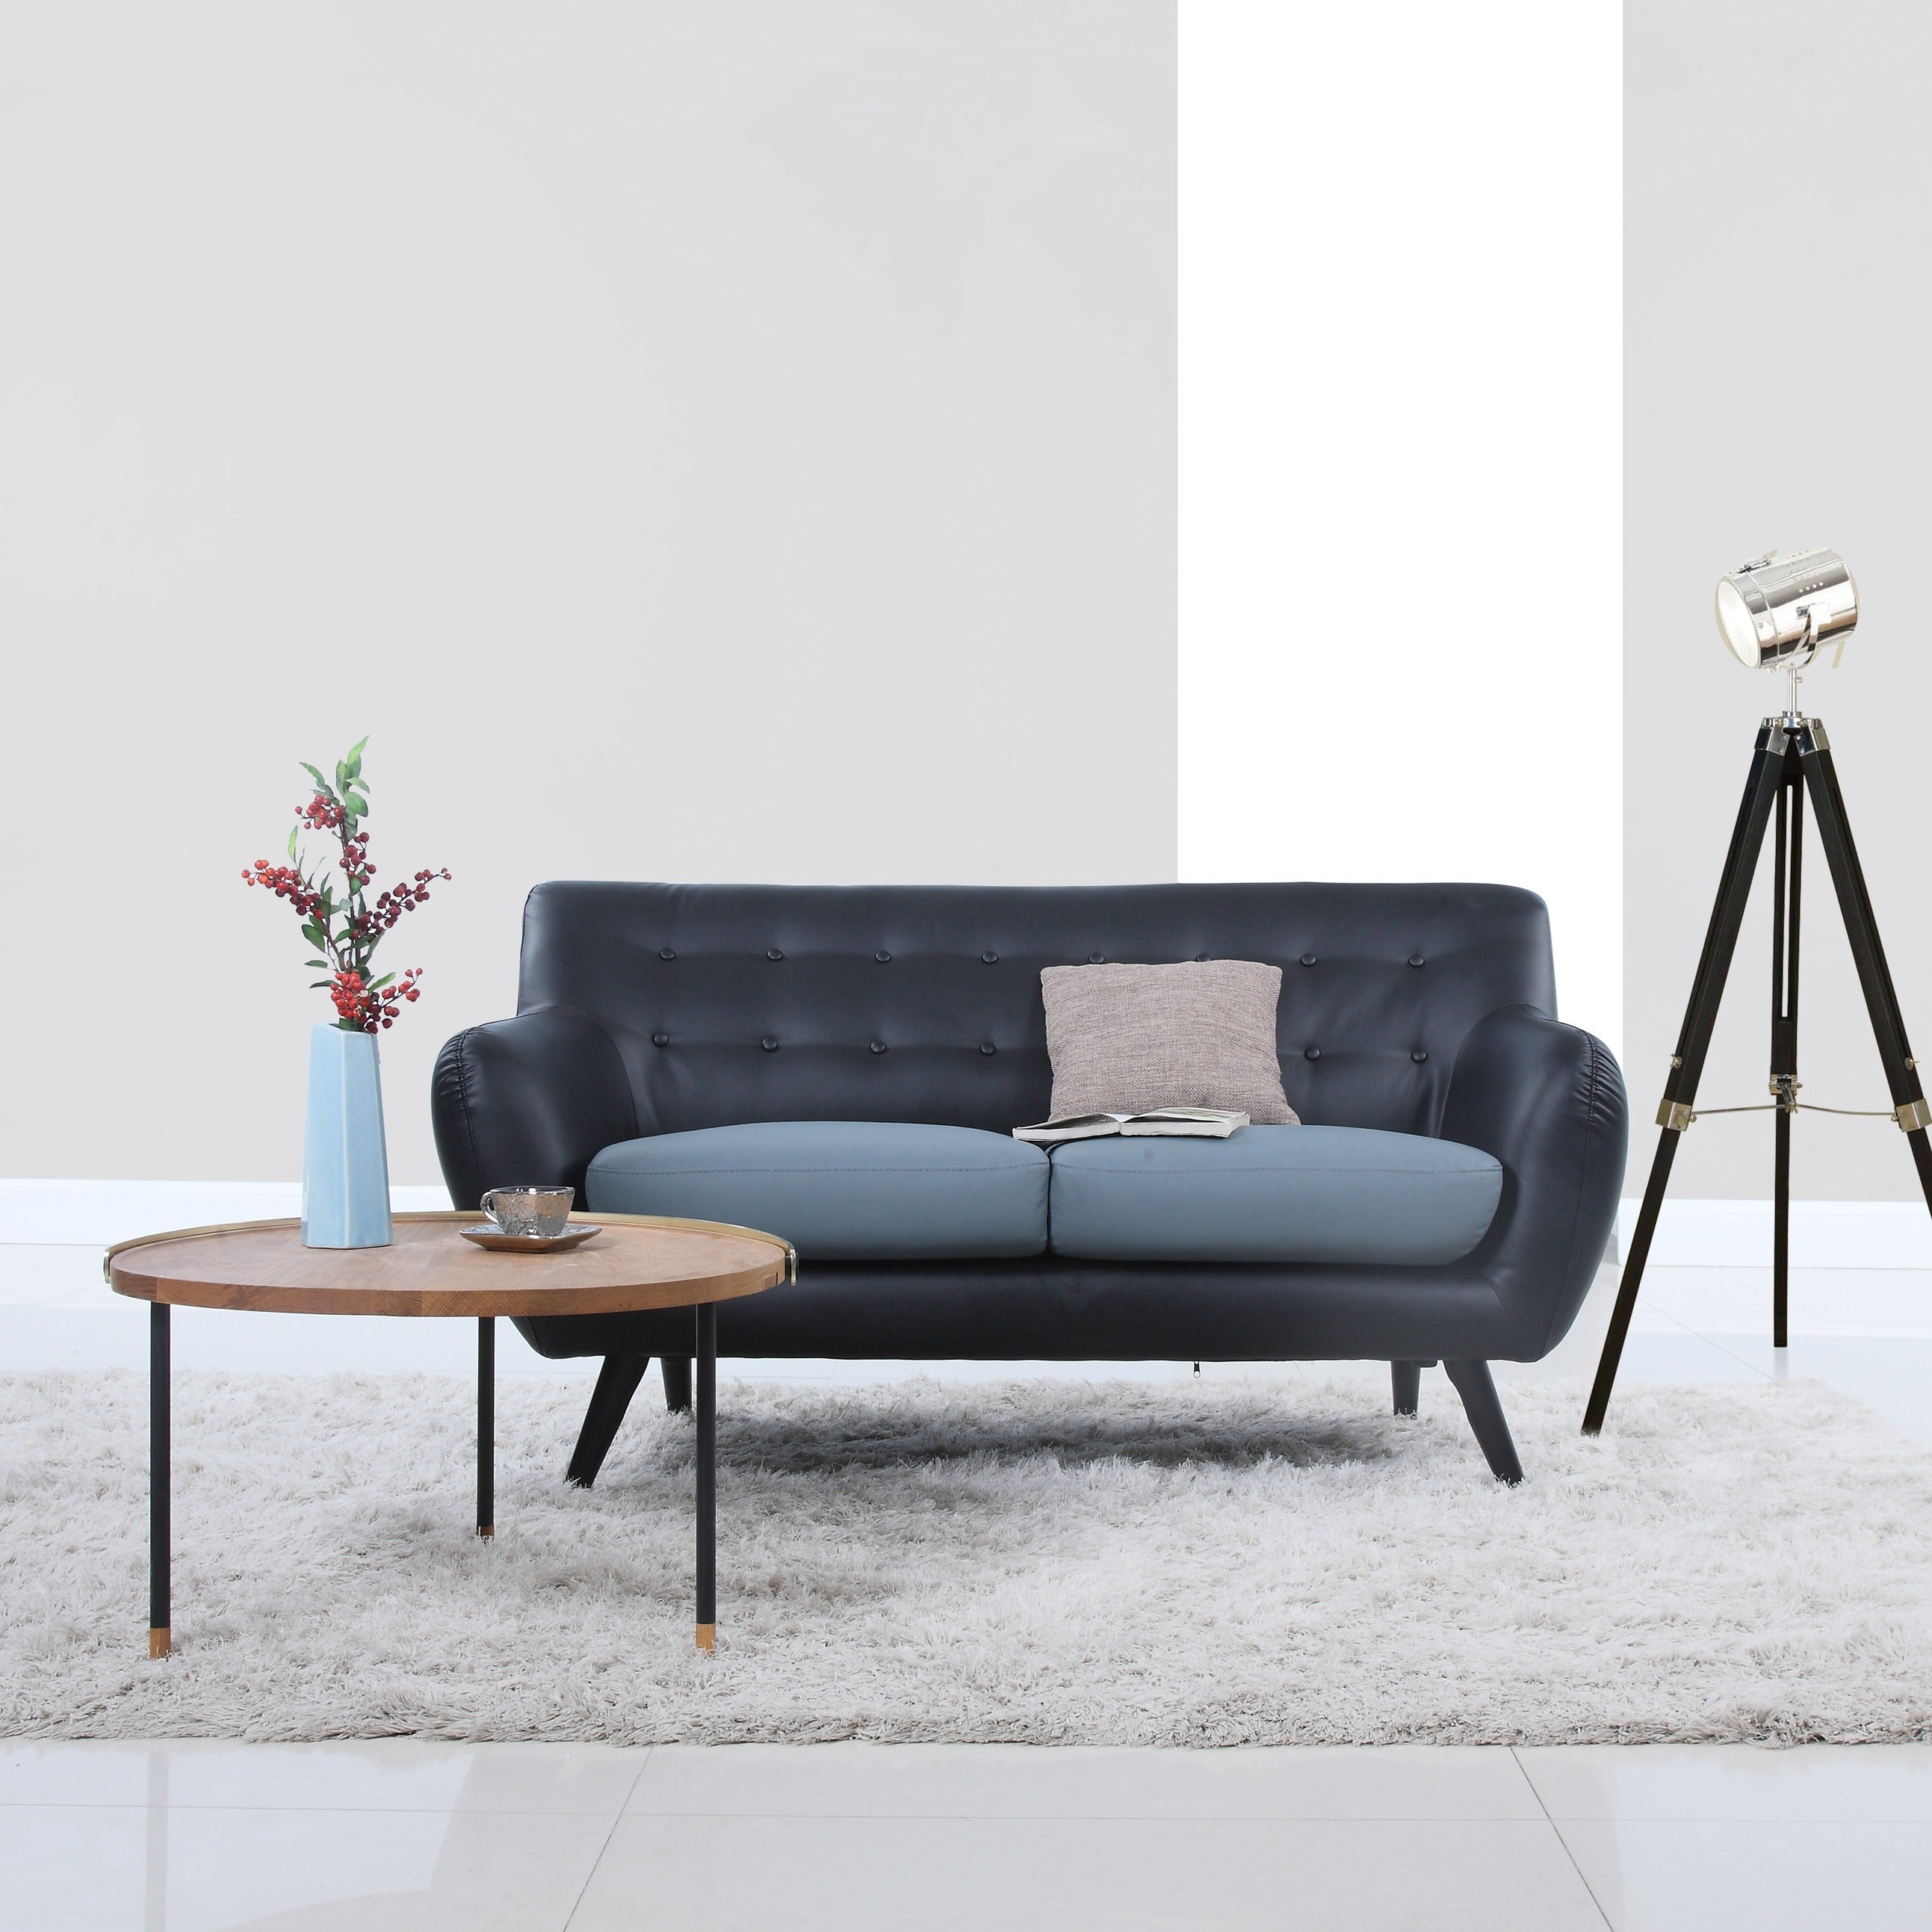 Shop mid century modern bonded leather loveseat living room furniture free shipping today overstock com 11111126